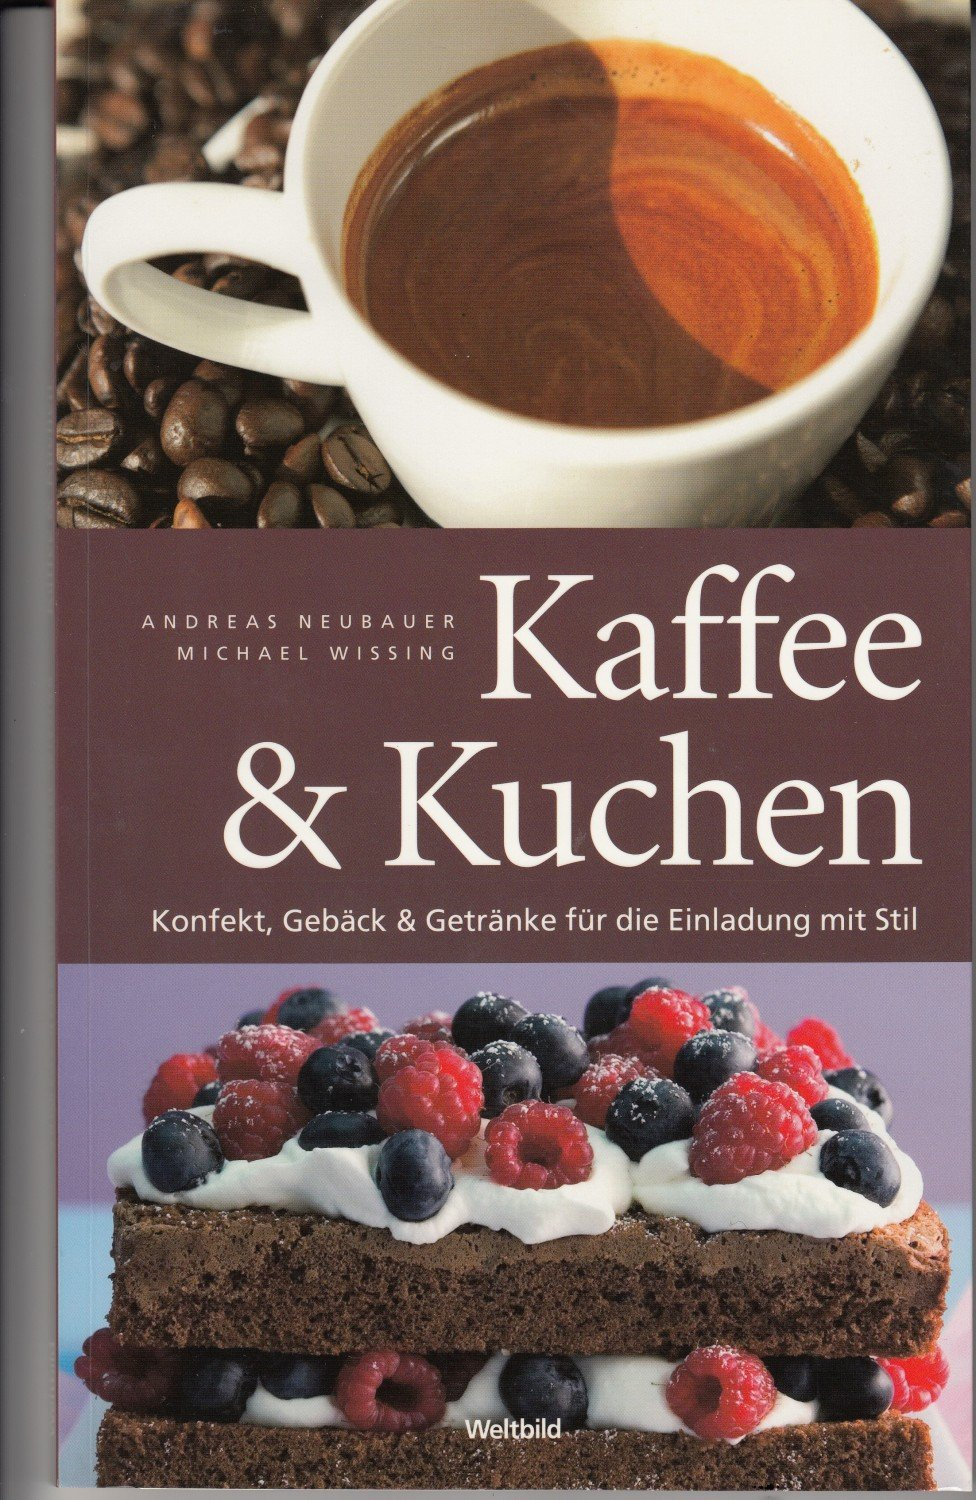 kaffee kuchen andreas neubauer michael wissing buch gebraucht kaufen a01kx8k001zzt. Black Bedroom Furniture Sets. Home Design Ideas